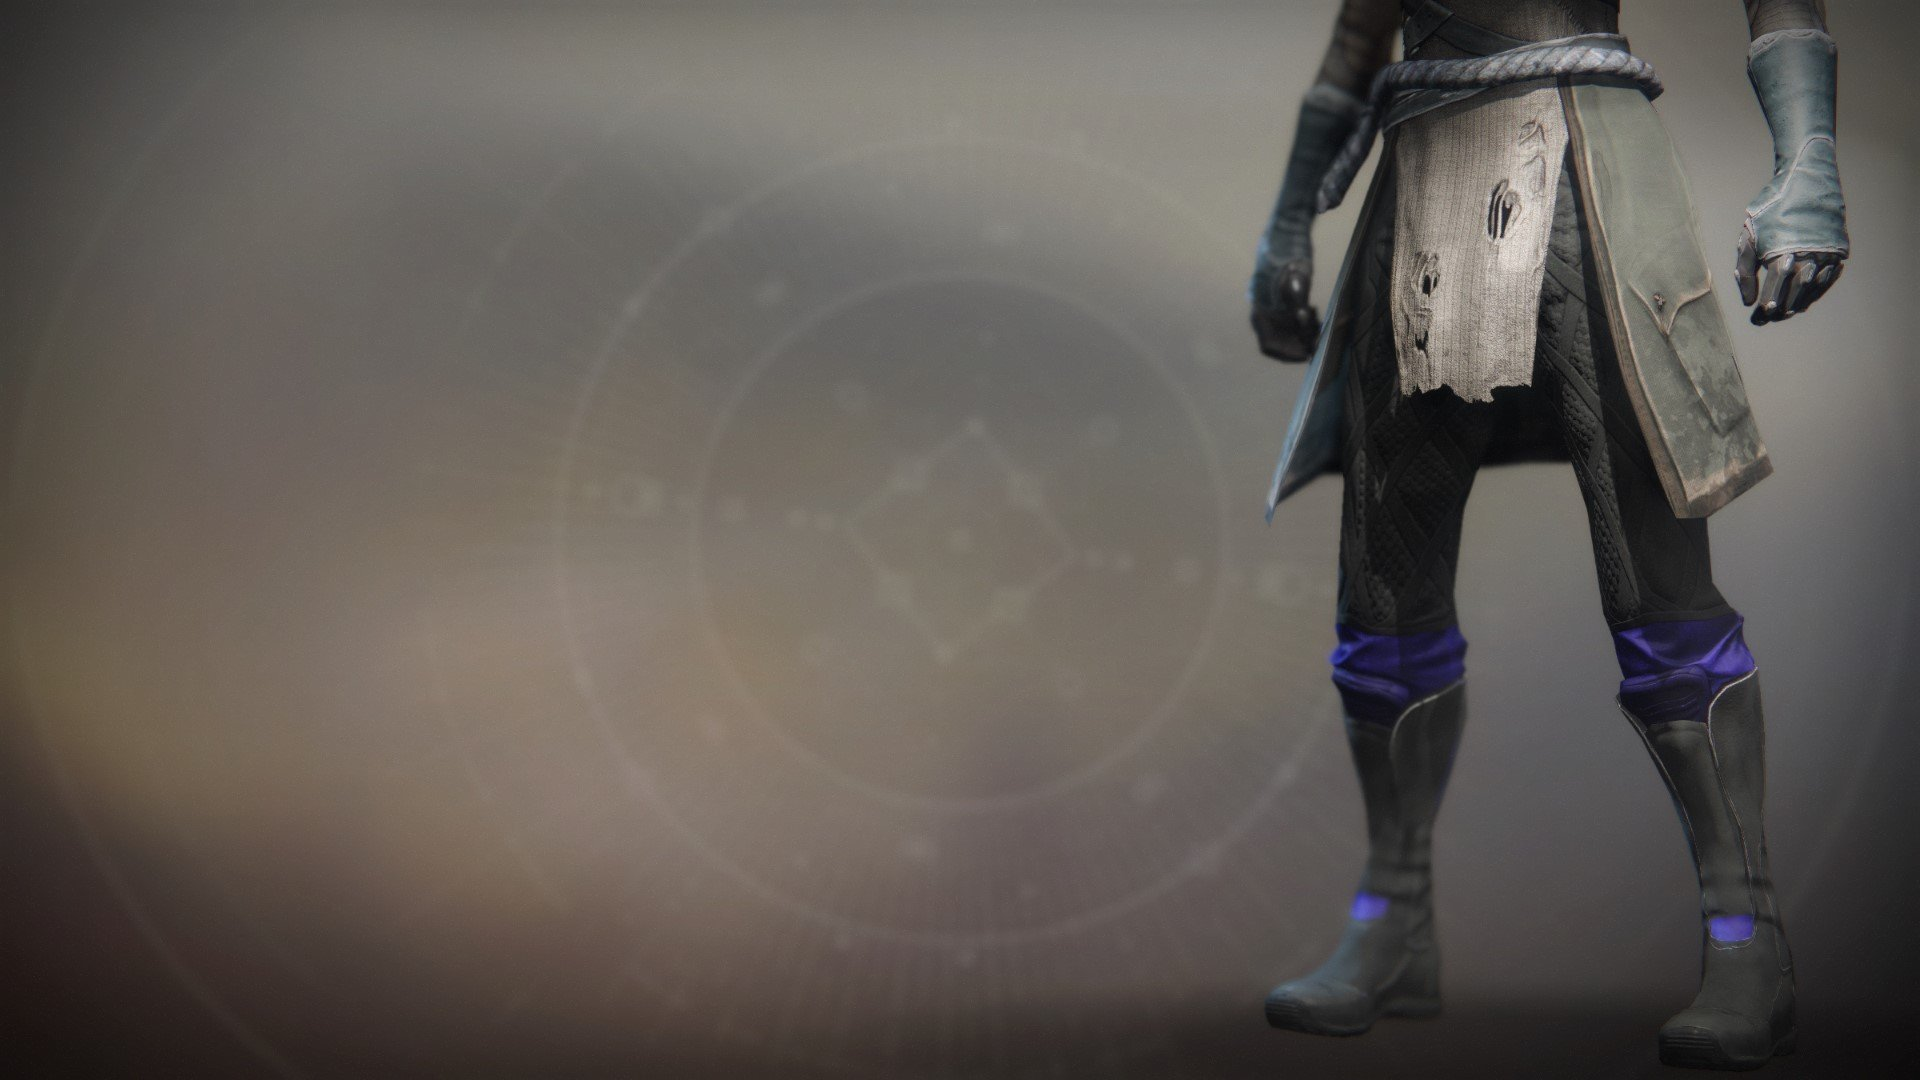 An in-game render of the Superior's Vision Boots.